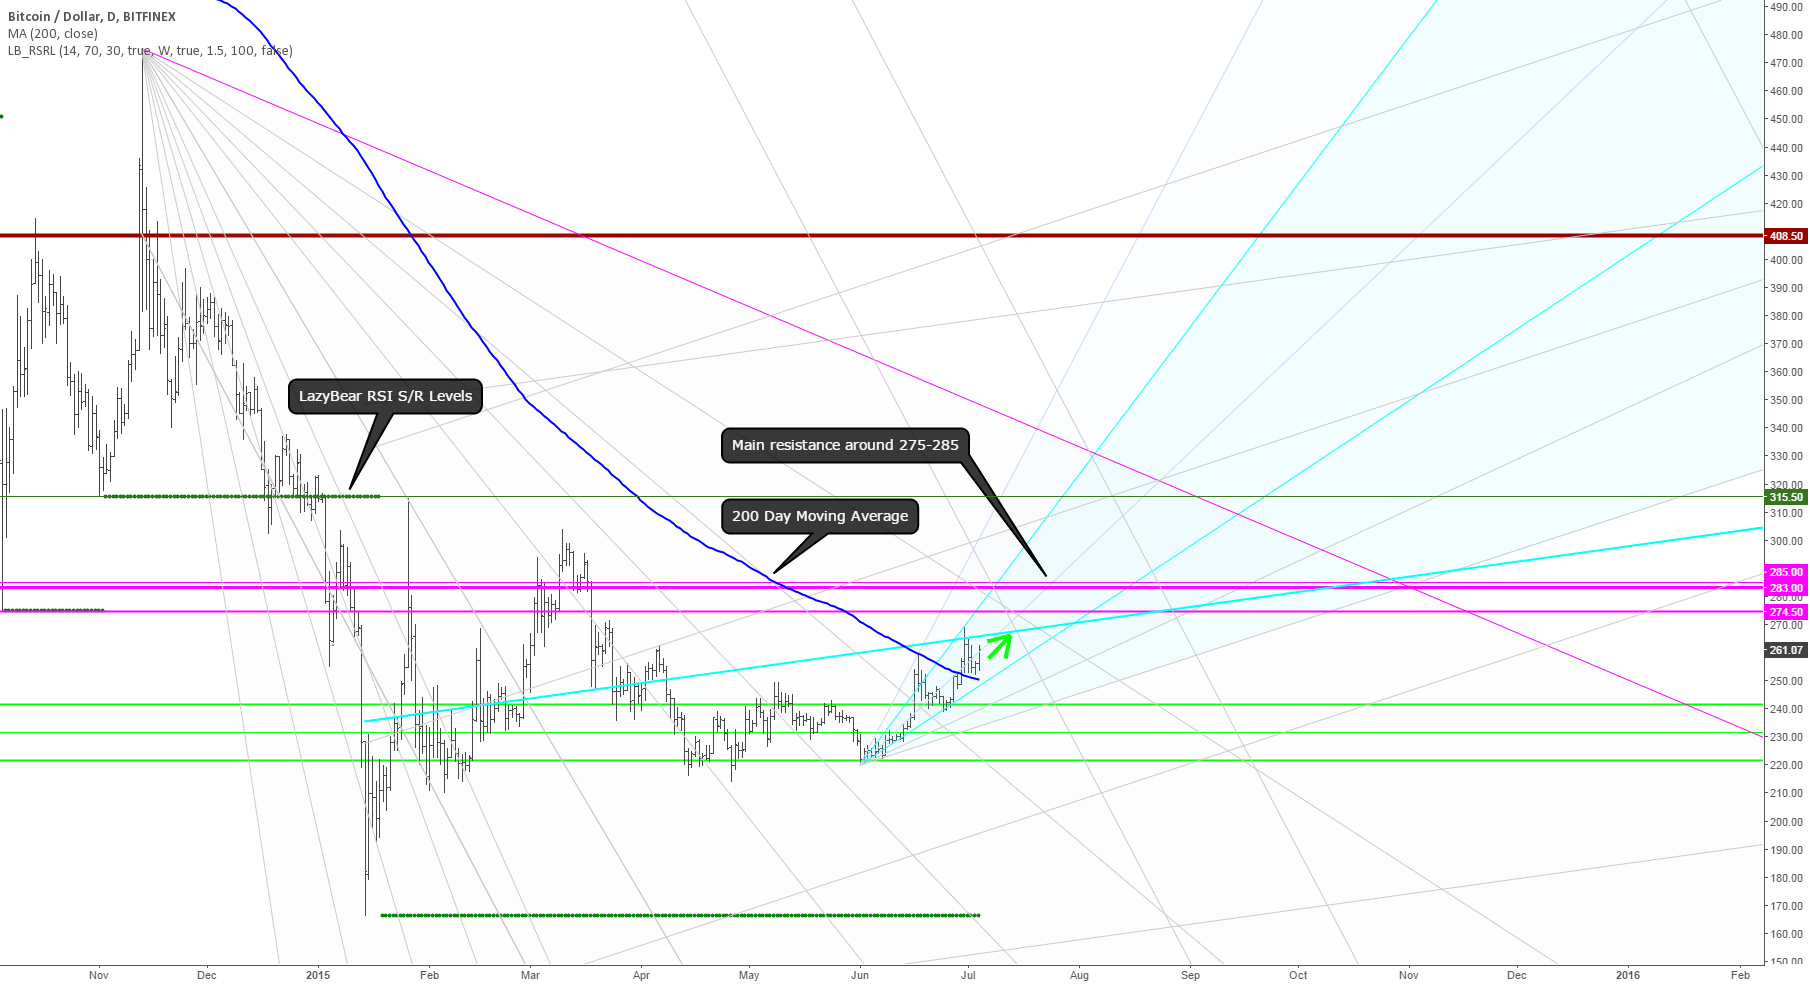 Bitcoin bull market. Best case uptrend for 2015